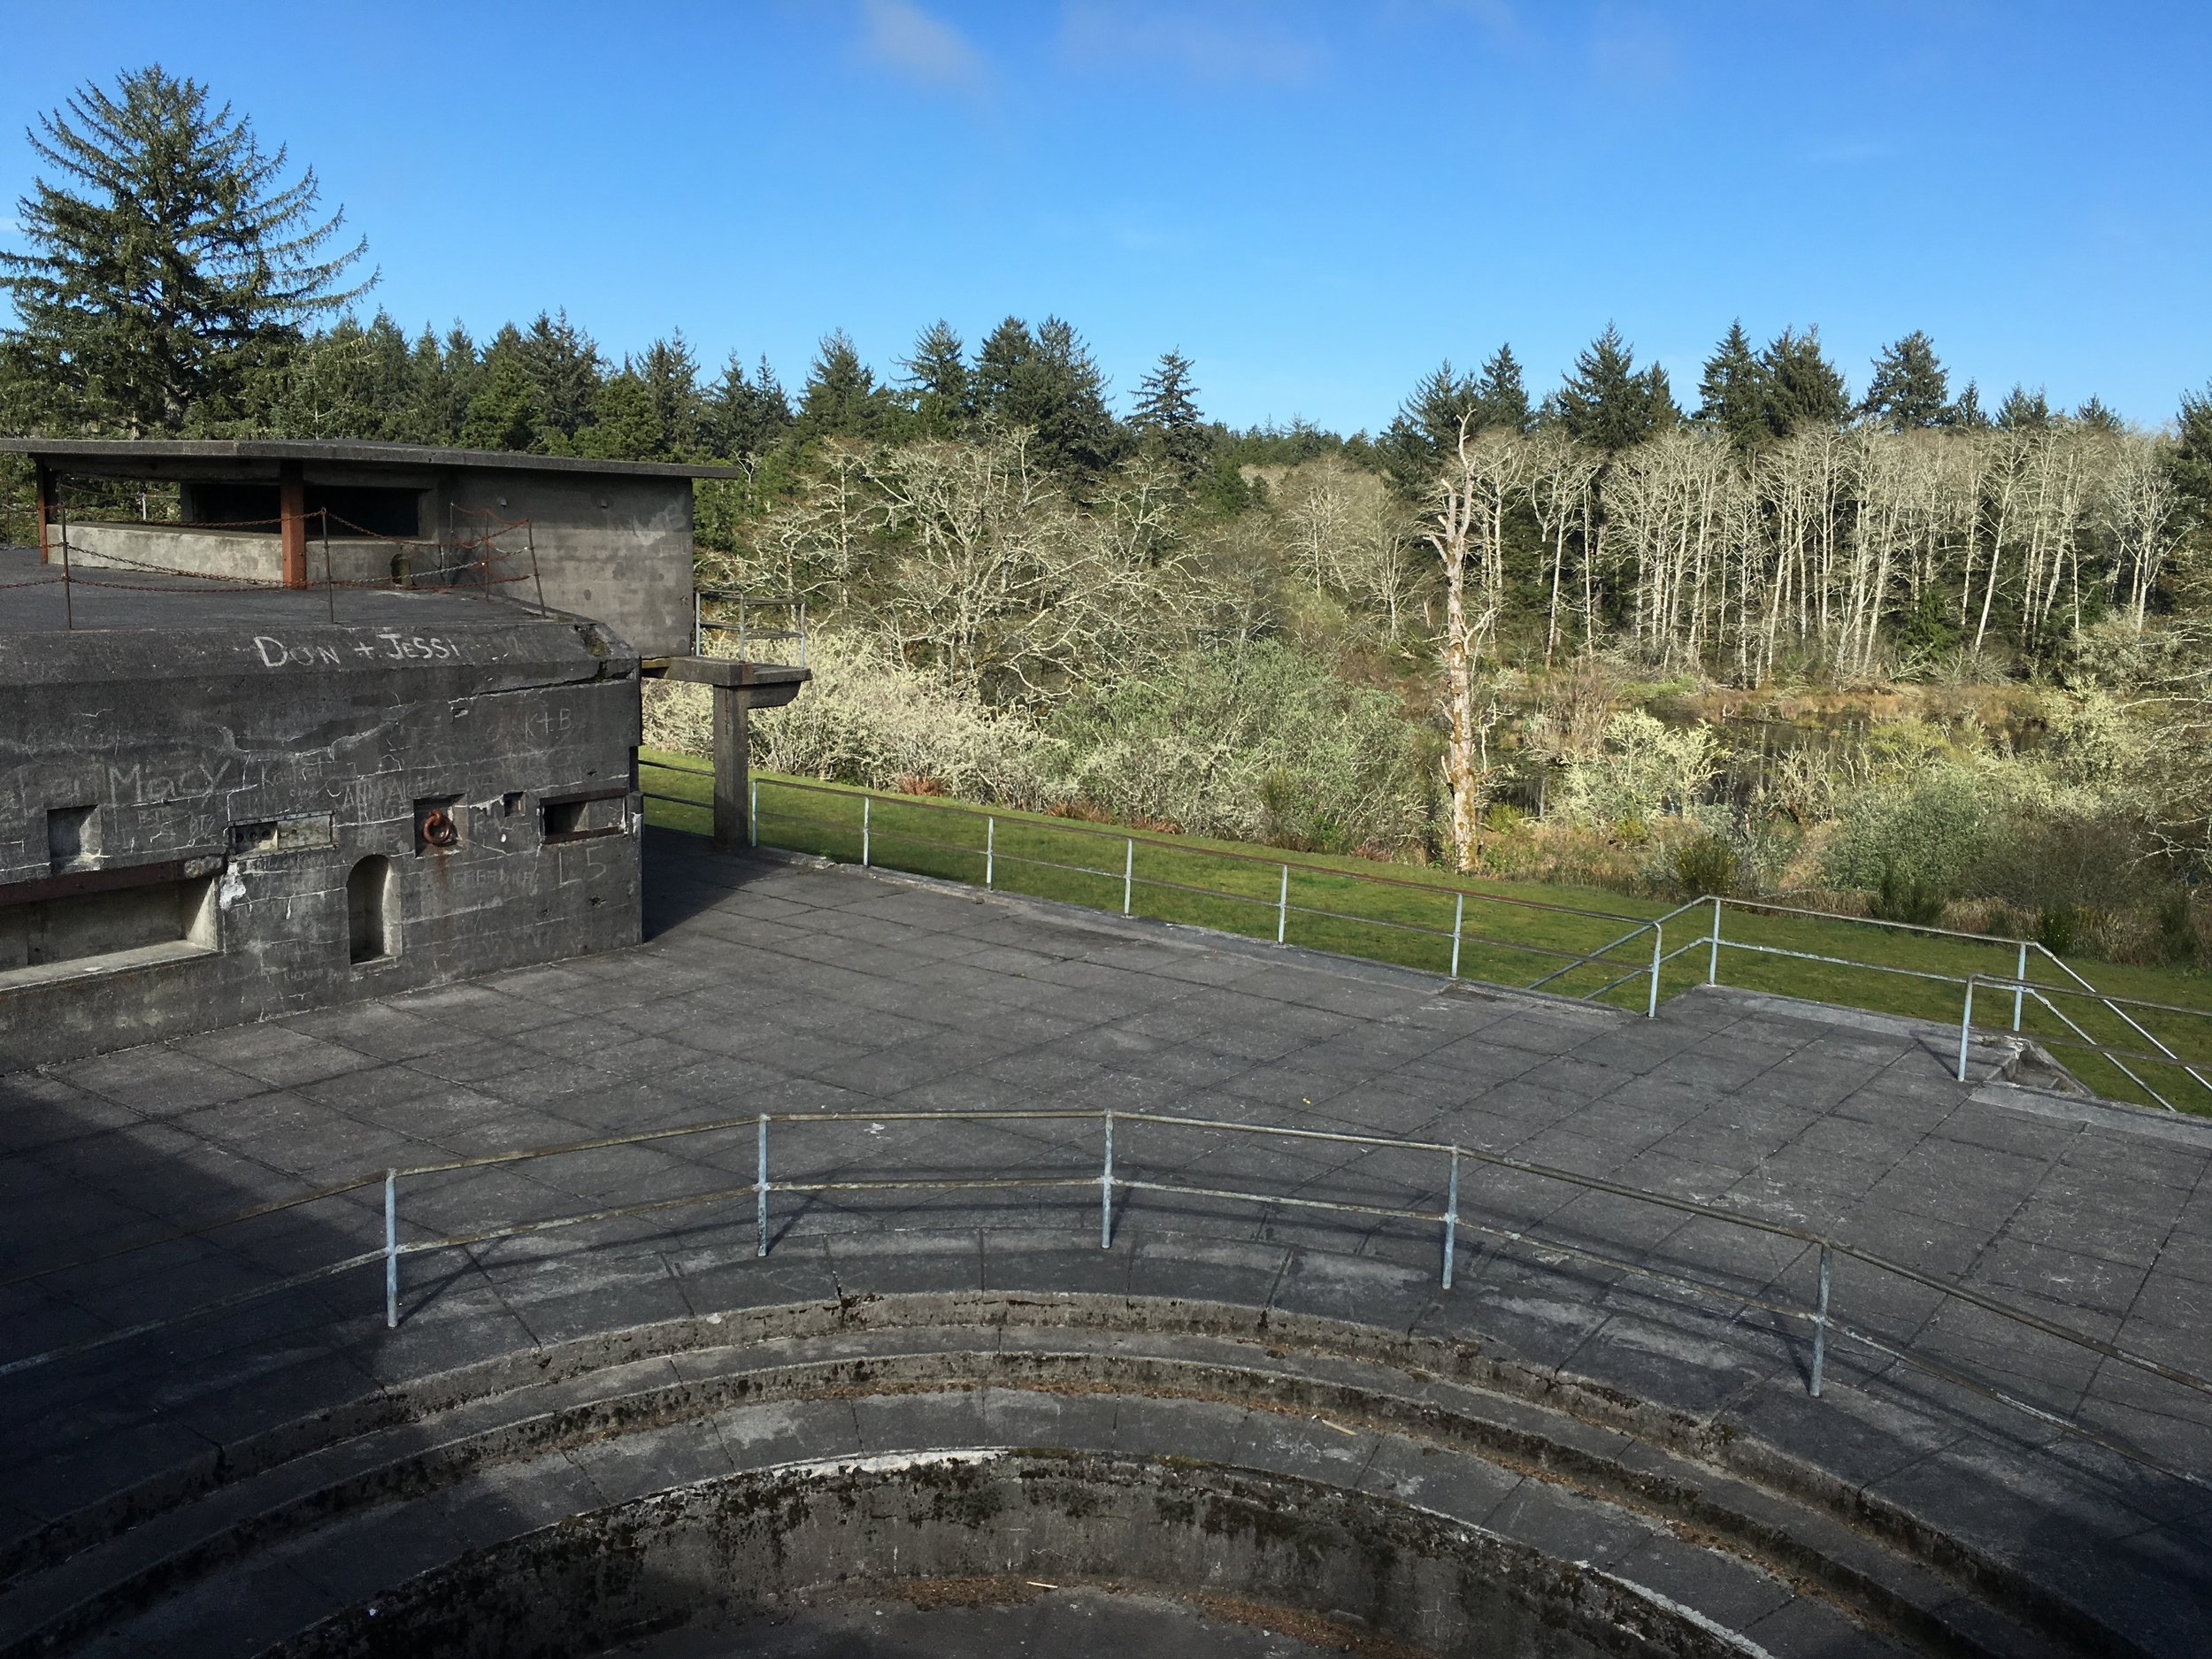 Fort Stevens State Park in Astoria